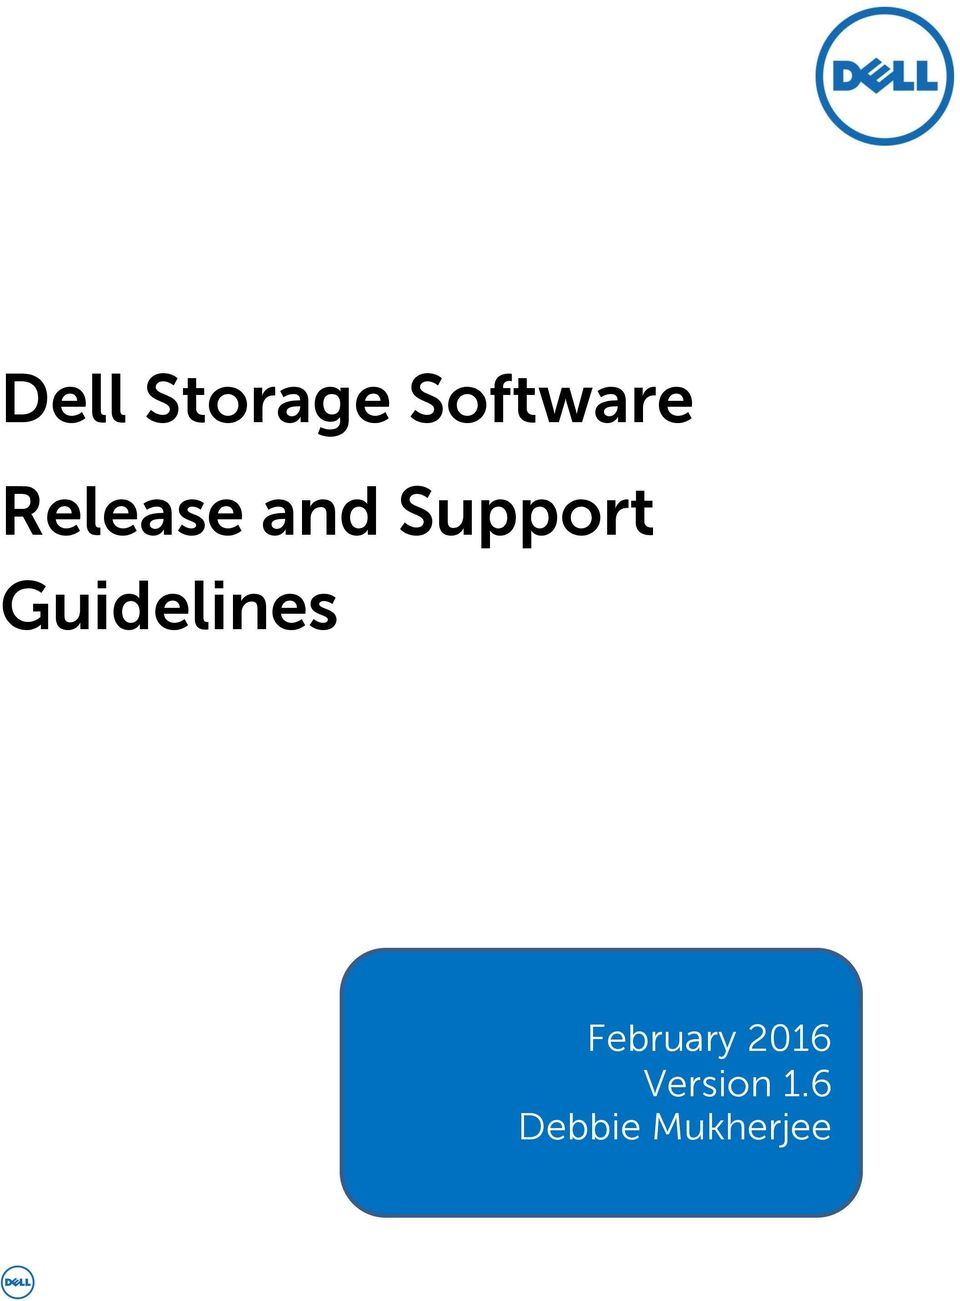 Dell Storage Software Release and Support Guidelines - PDF